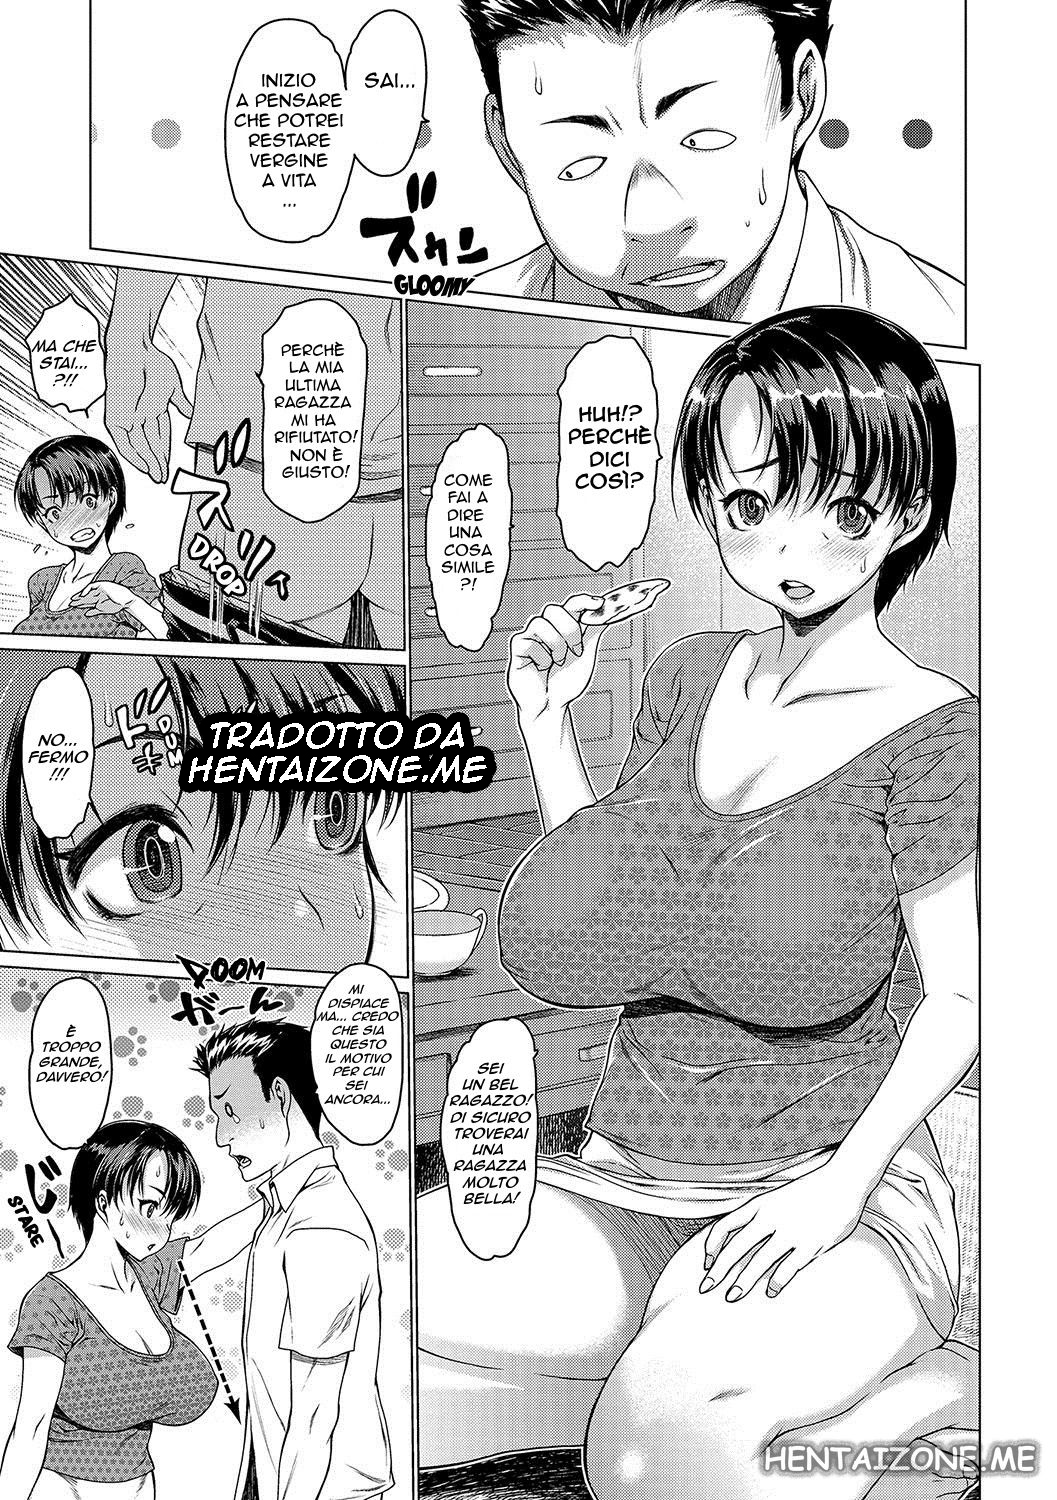 mamma mother hentai porno manga italiano